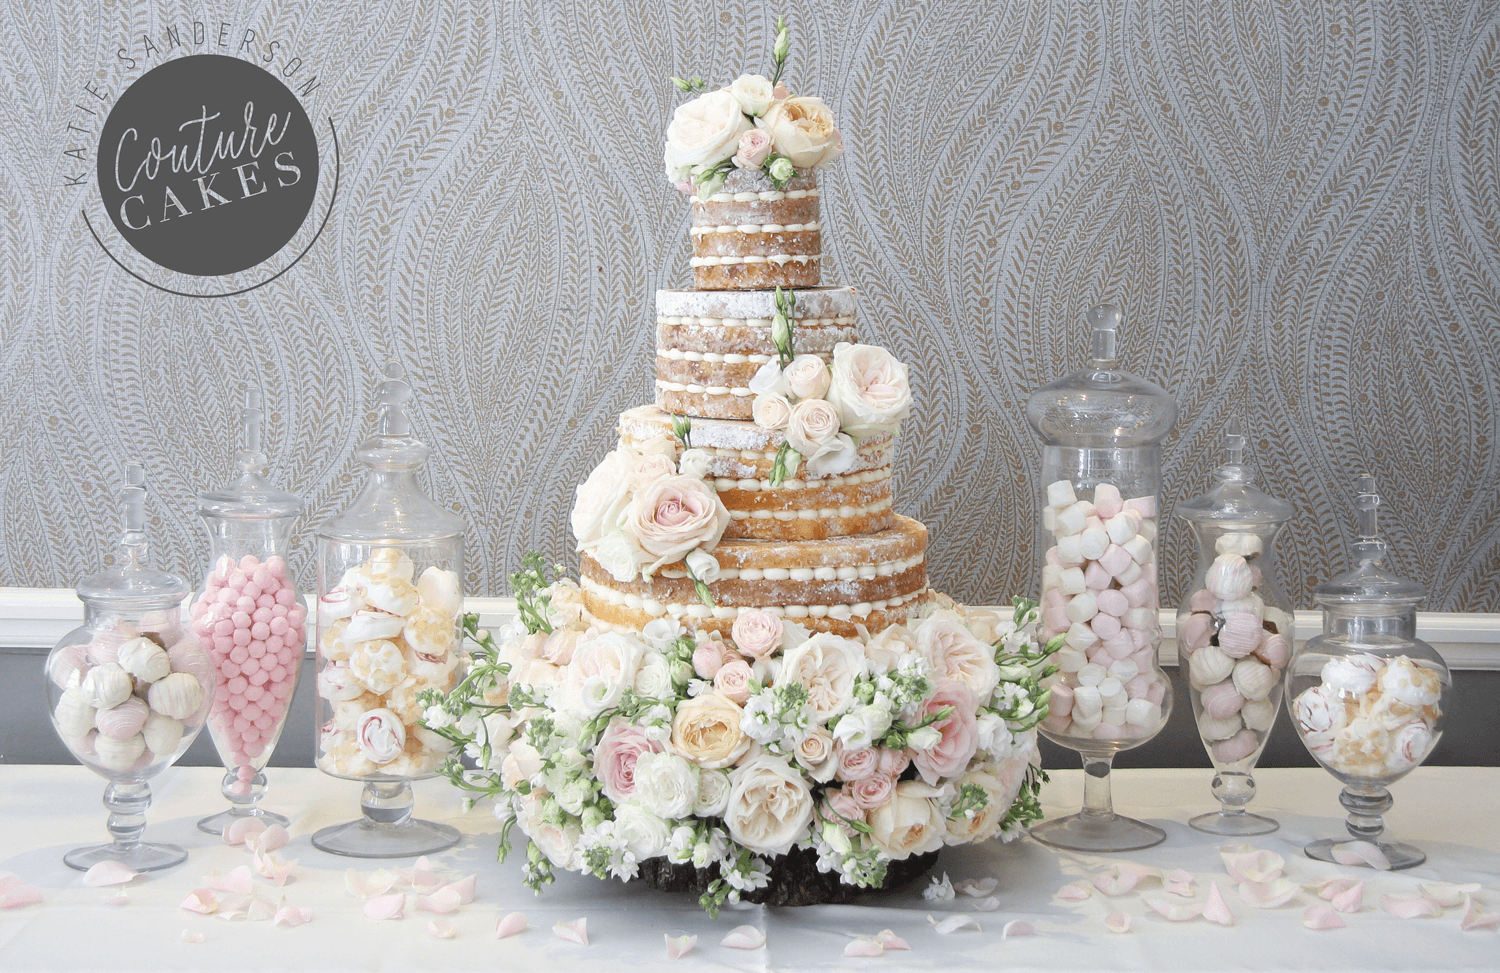 Naked cake serves 180 portions, Price £465, plus £200 bed of flowers, plus treats